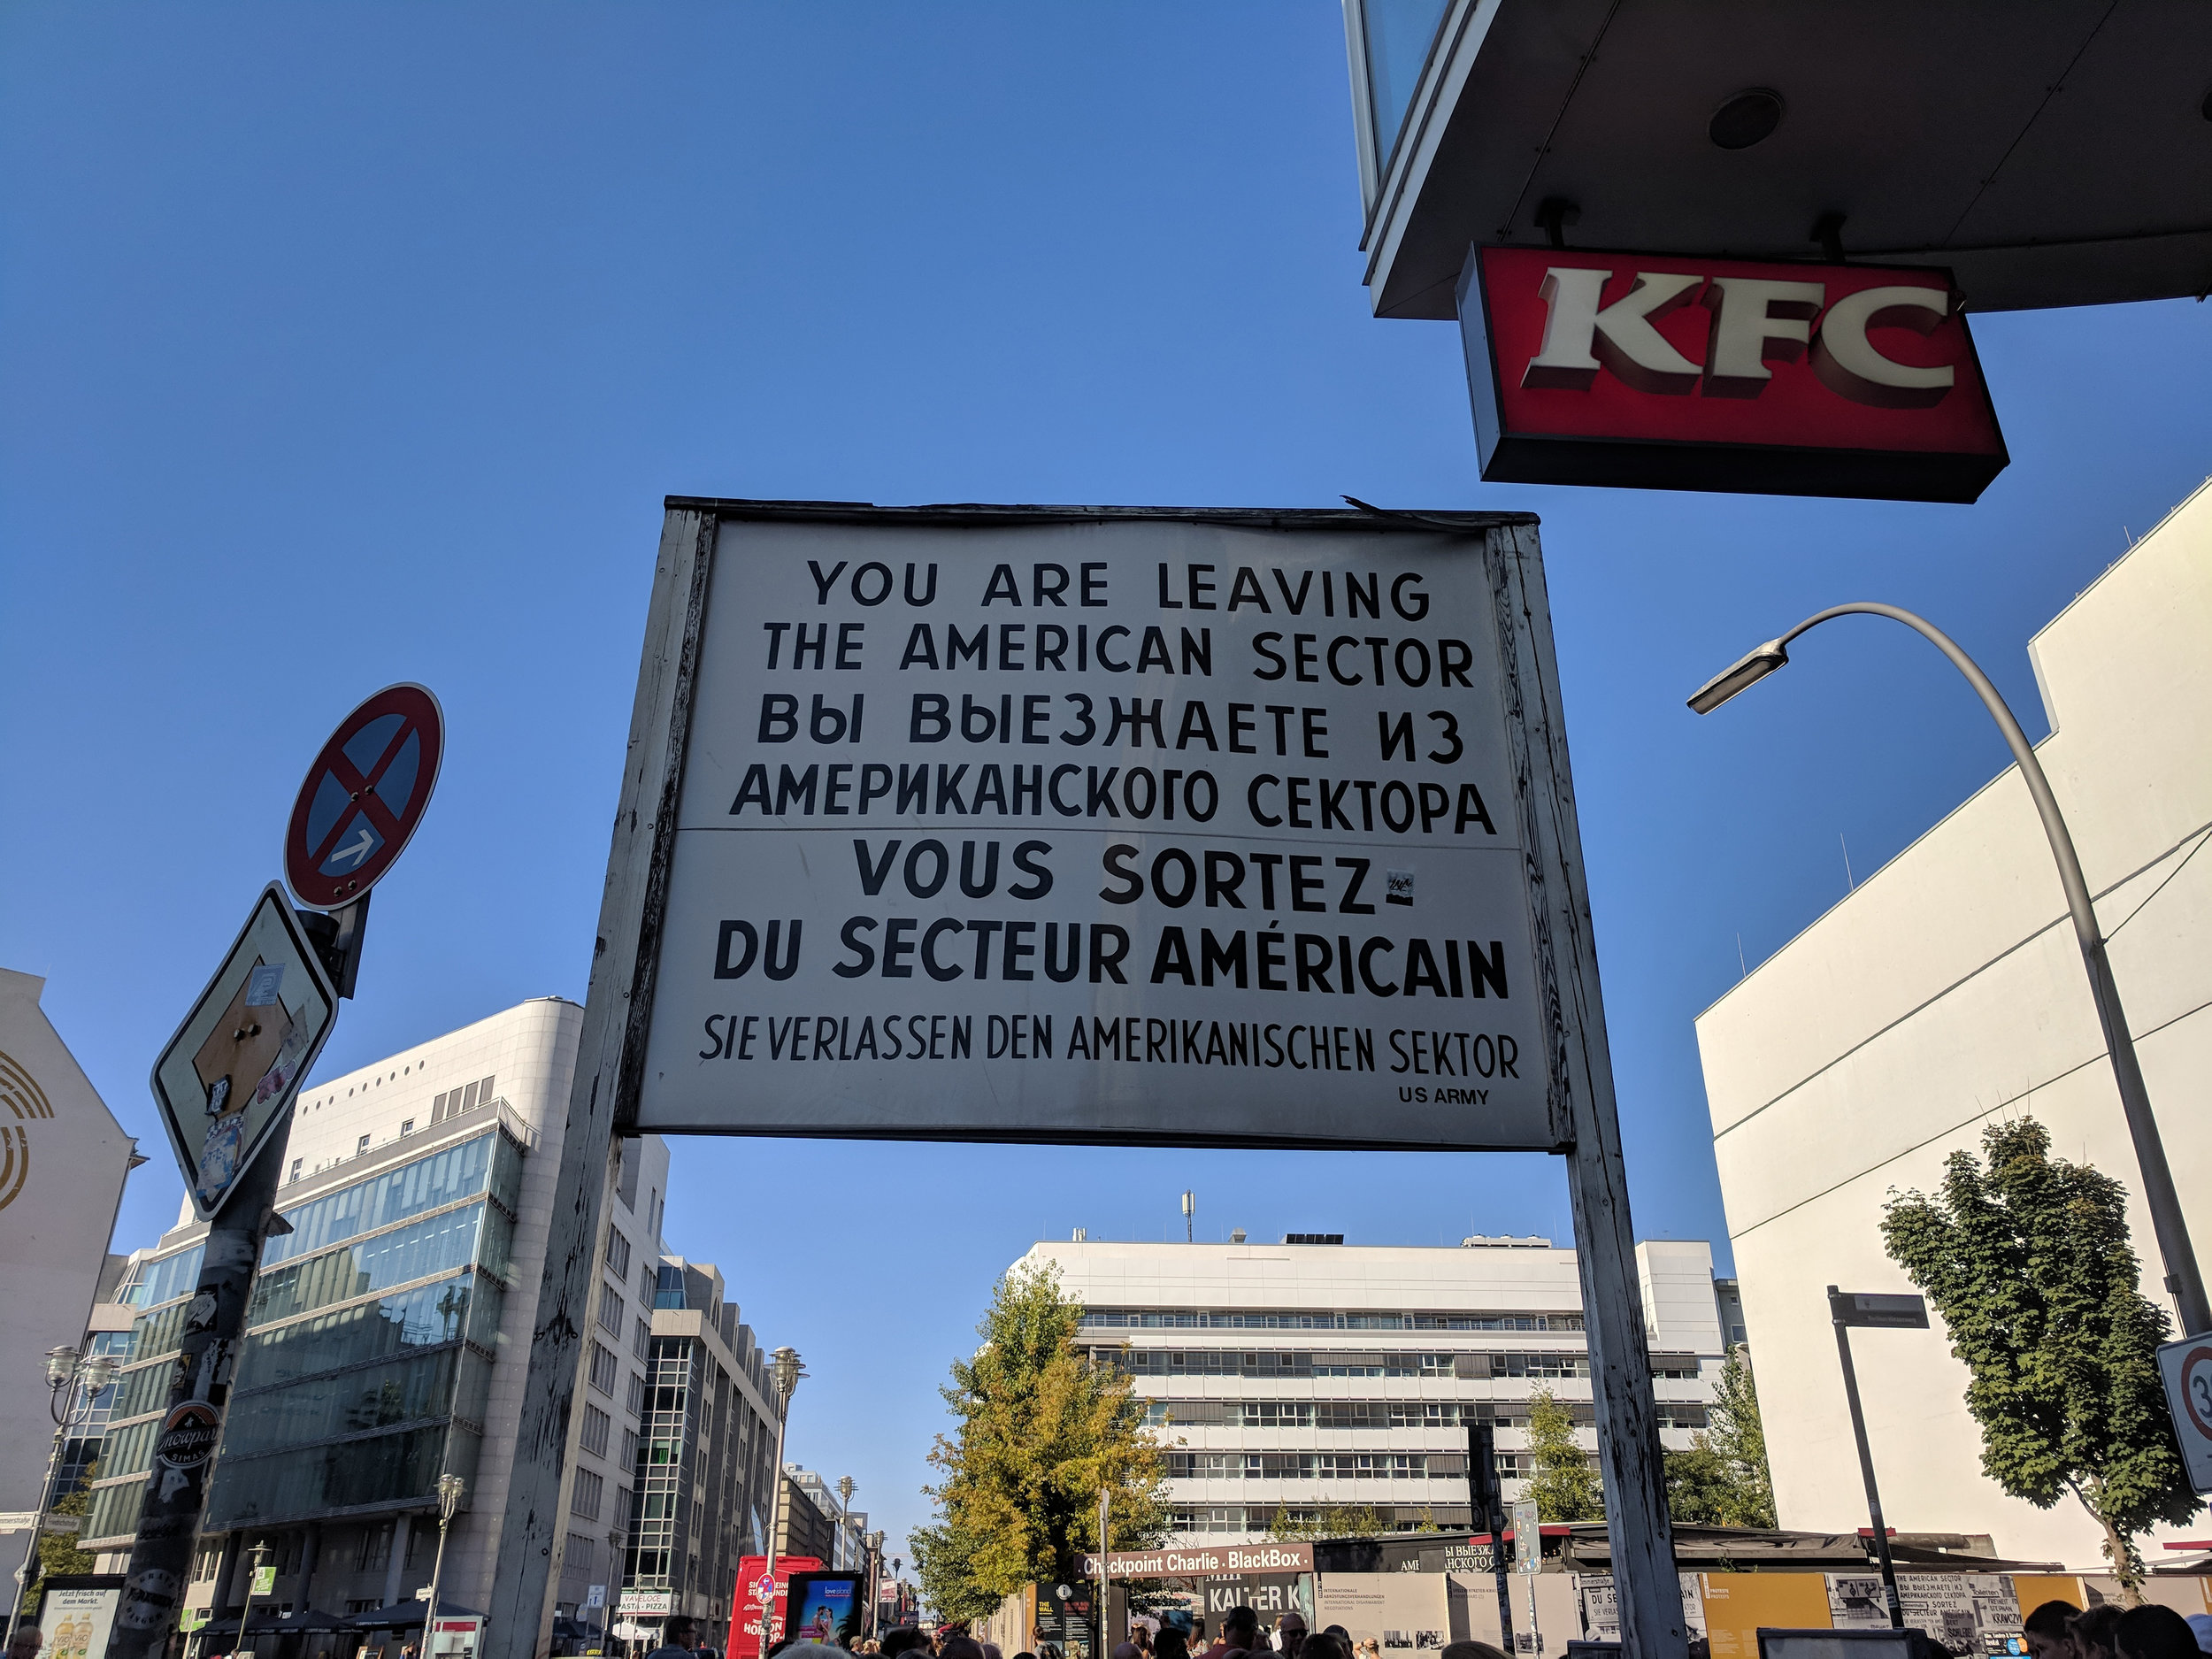 We had to visit Checkpoint Charlie